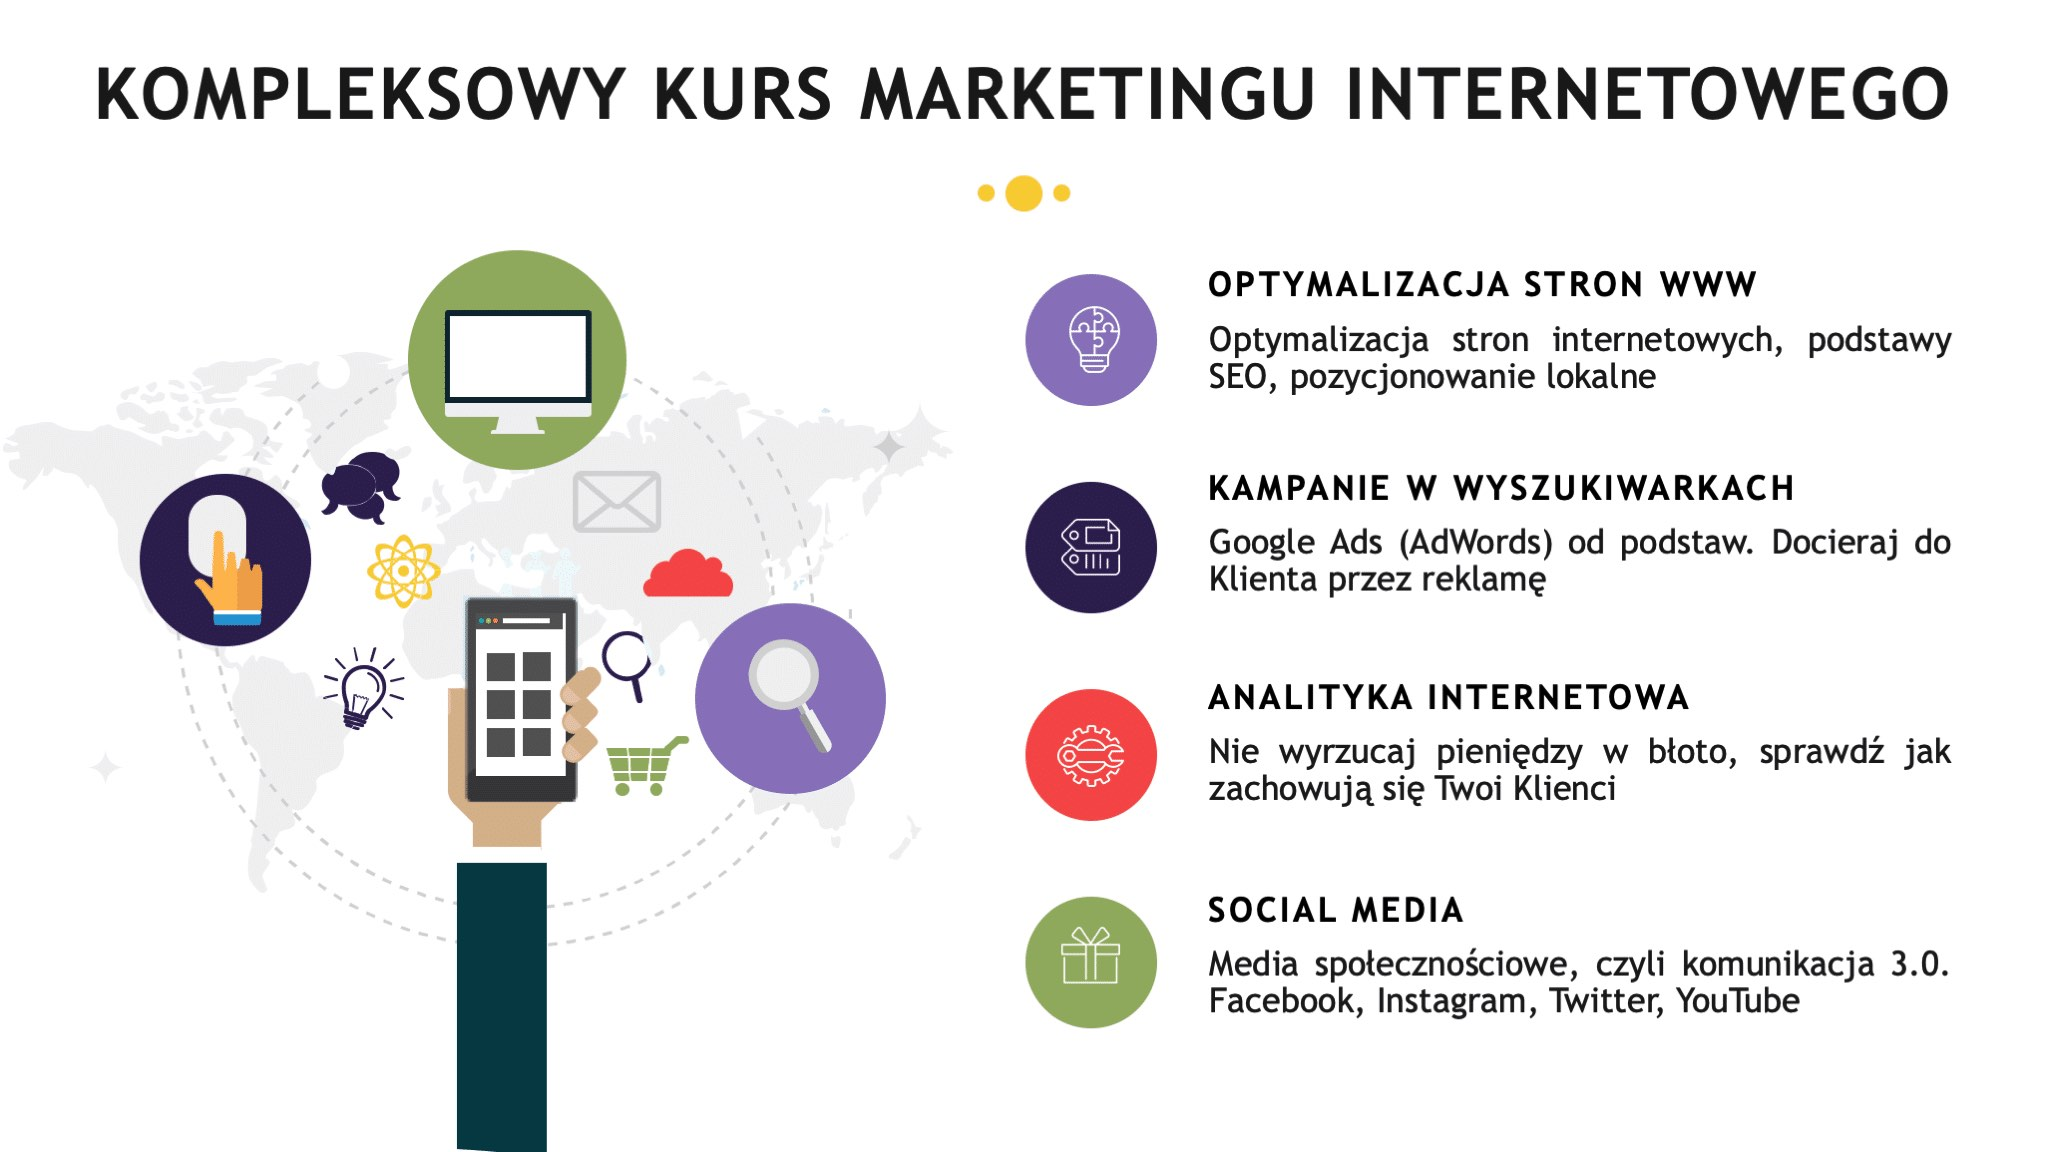 kurs marketingu internetowego